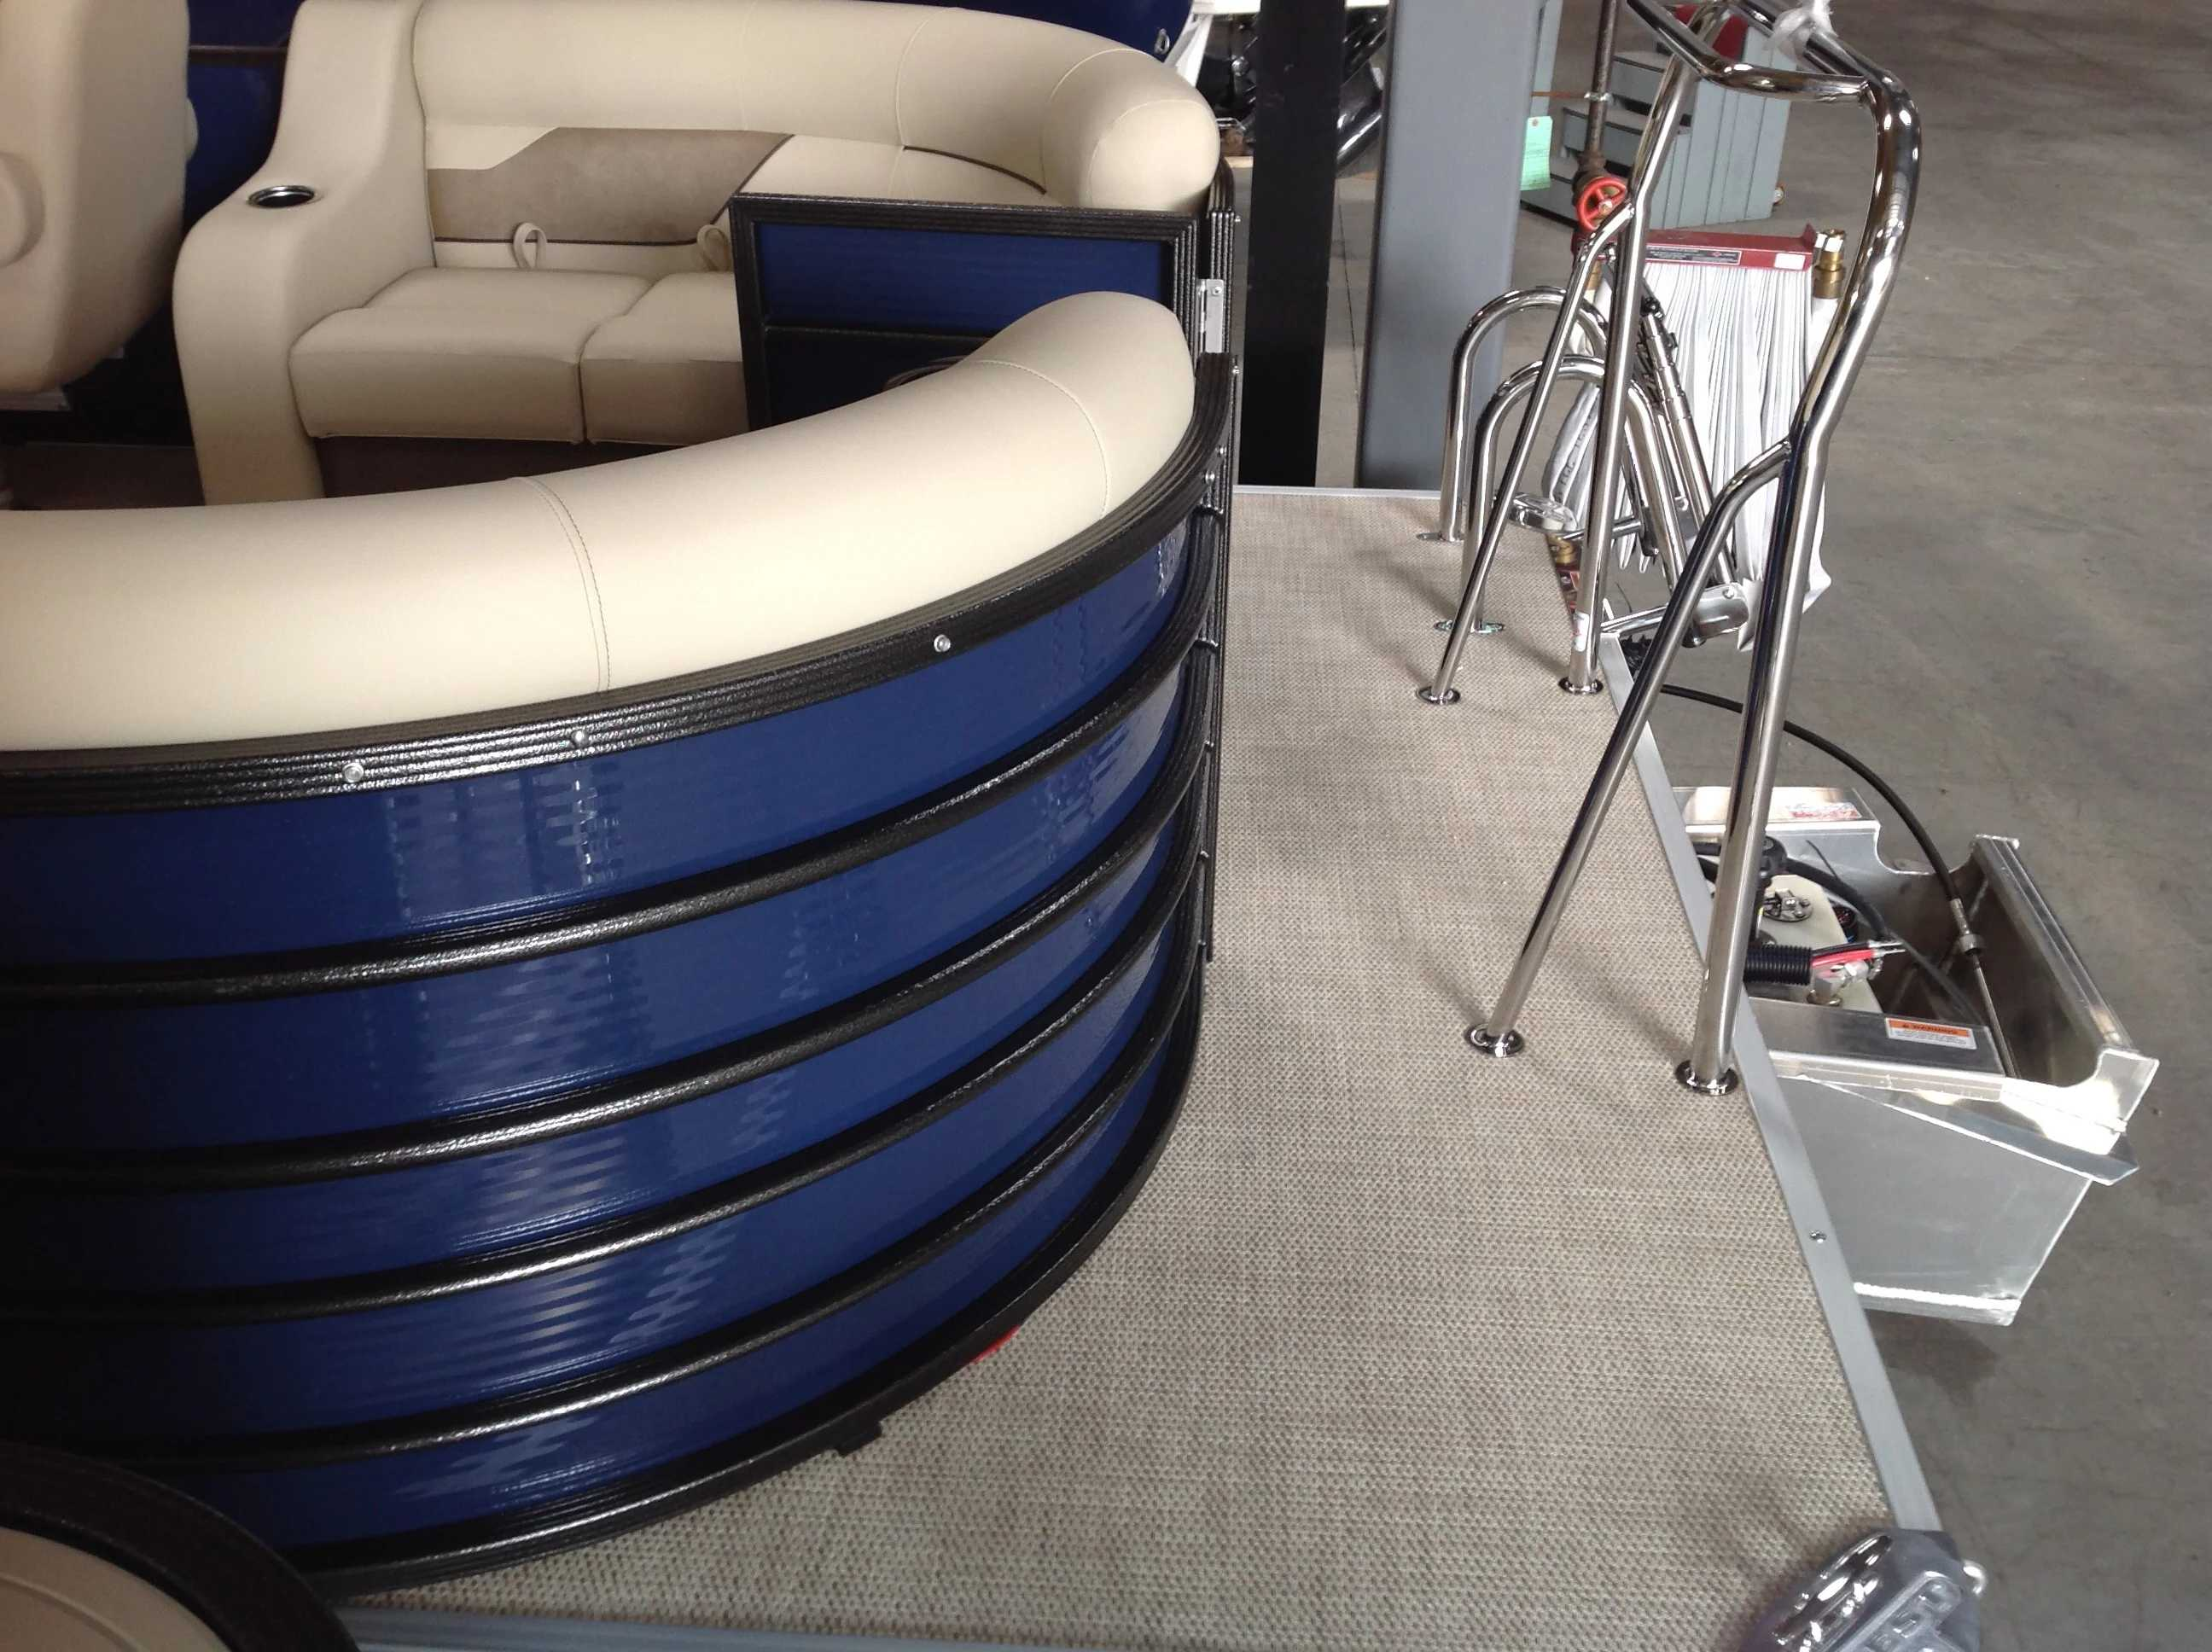 2021 Crest boat for sale, model of the boat is Cl Lx 200slc & Image # 13 of 13